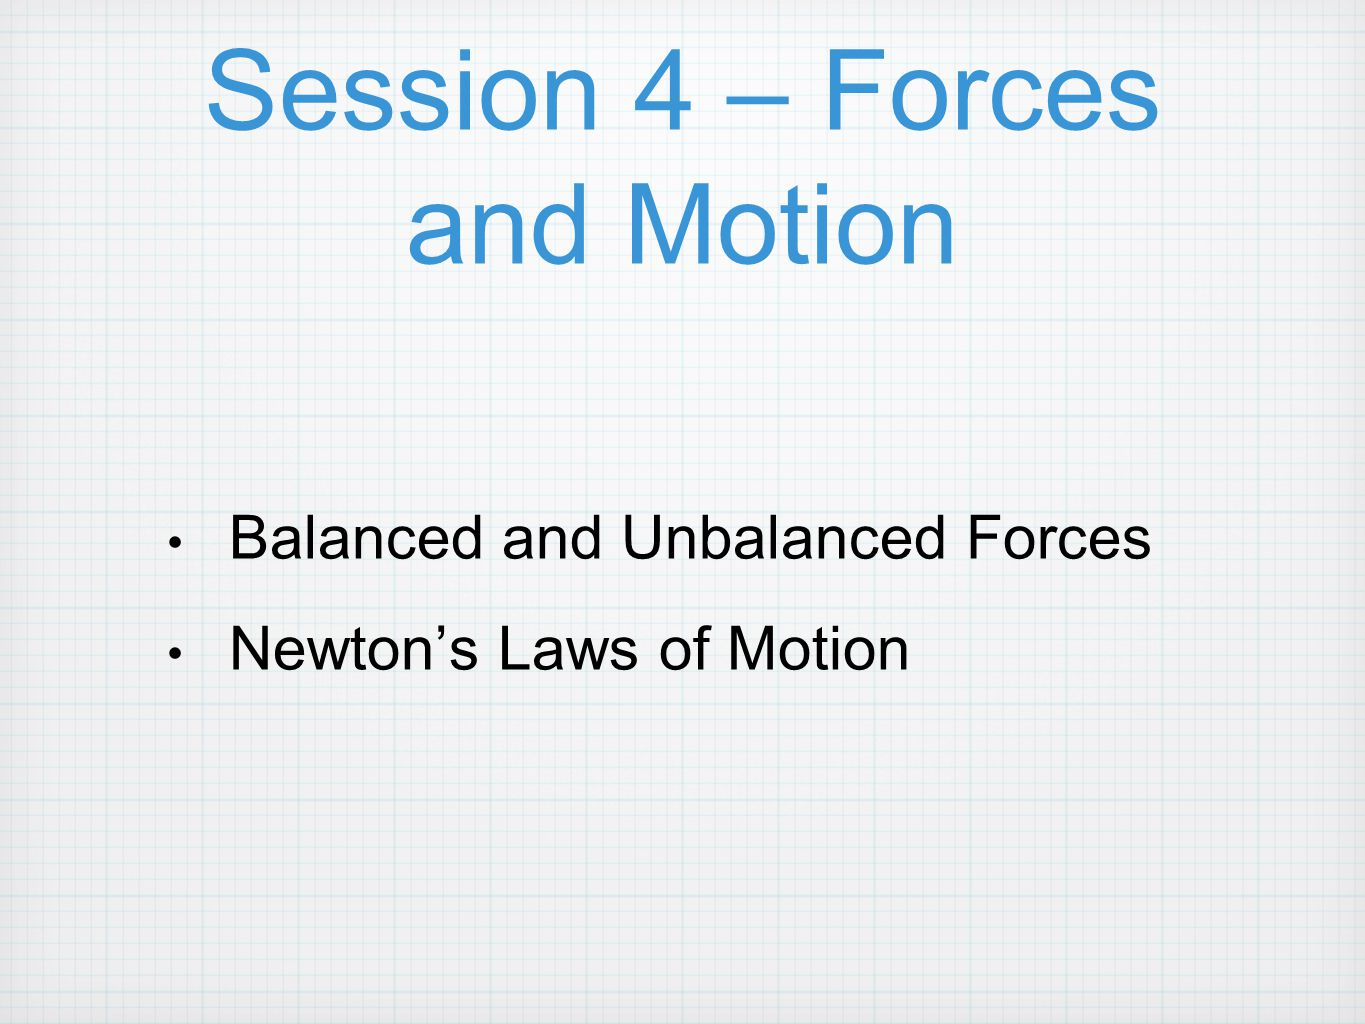 Session 4 – Forces and Motion